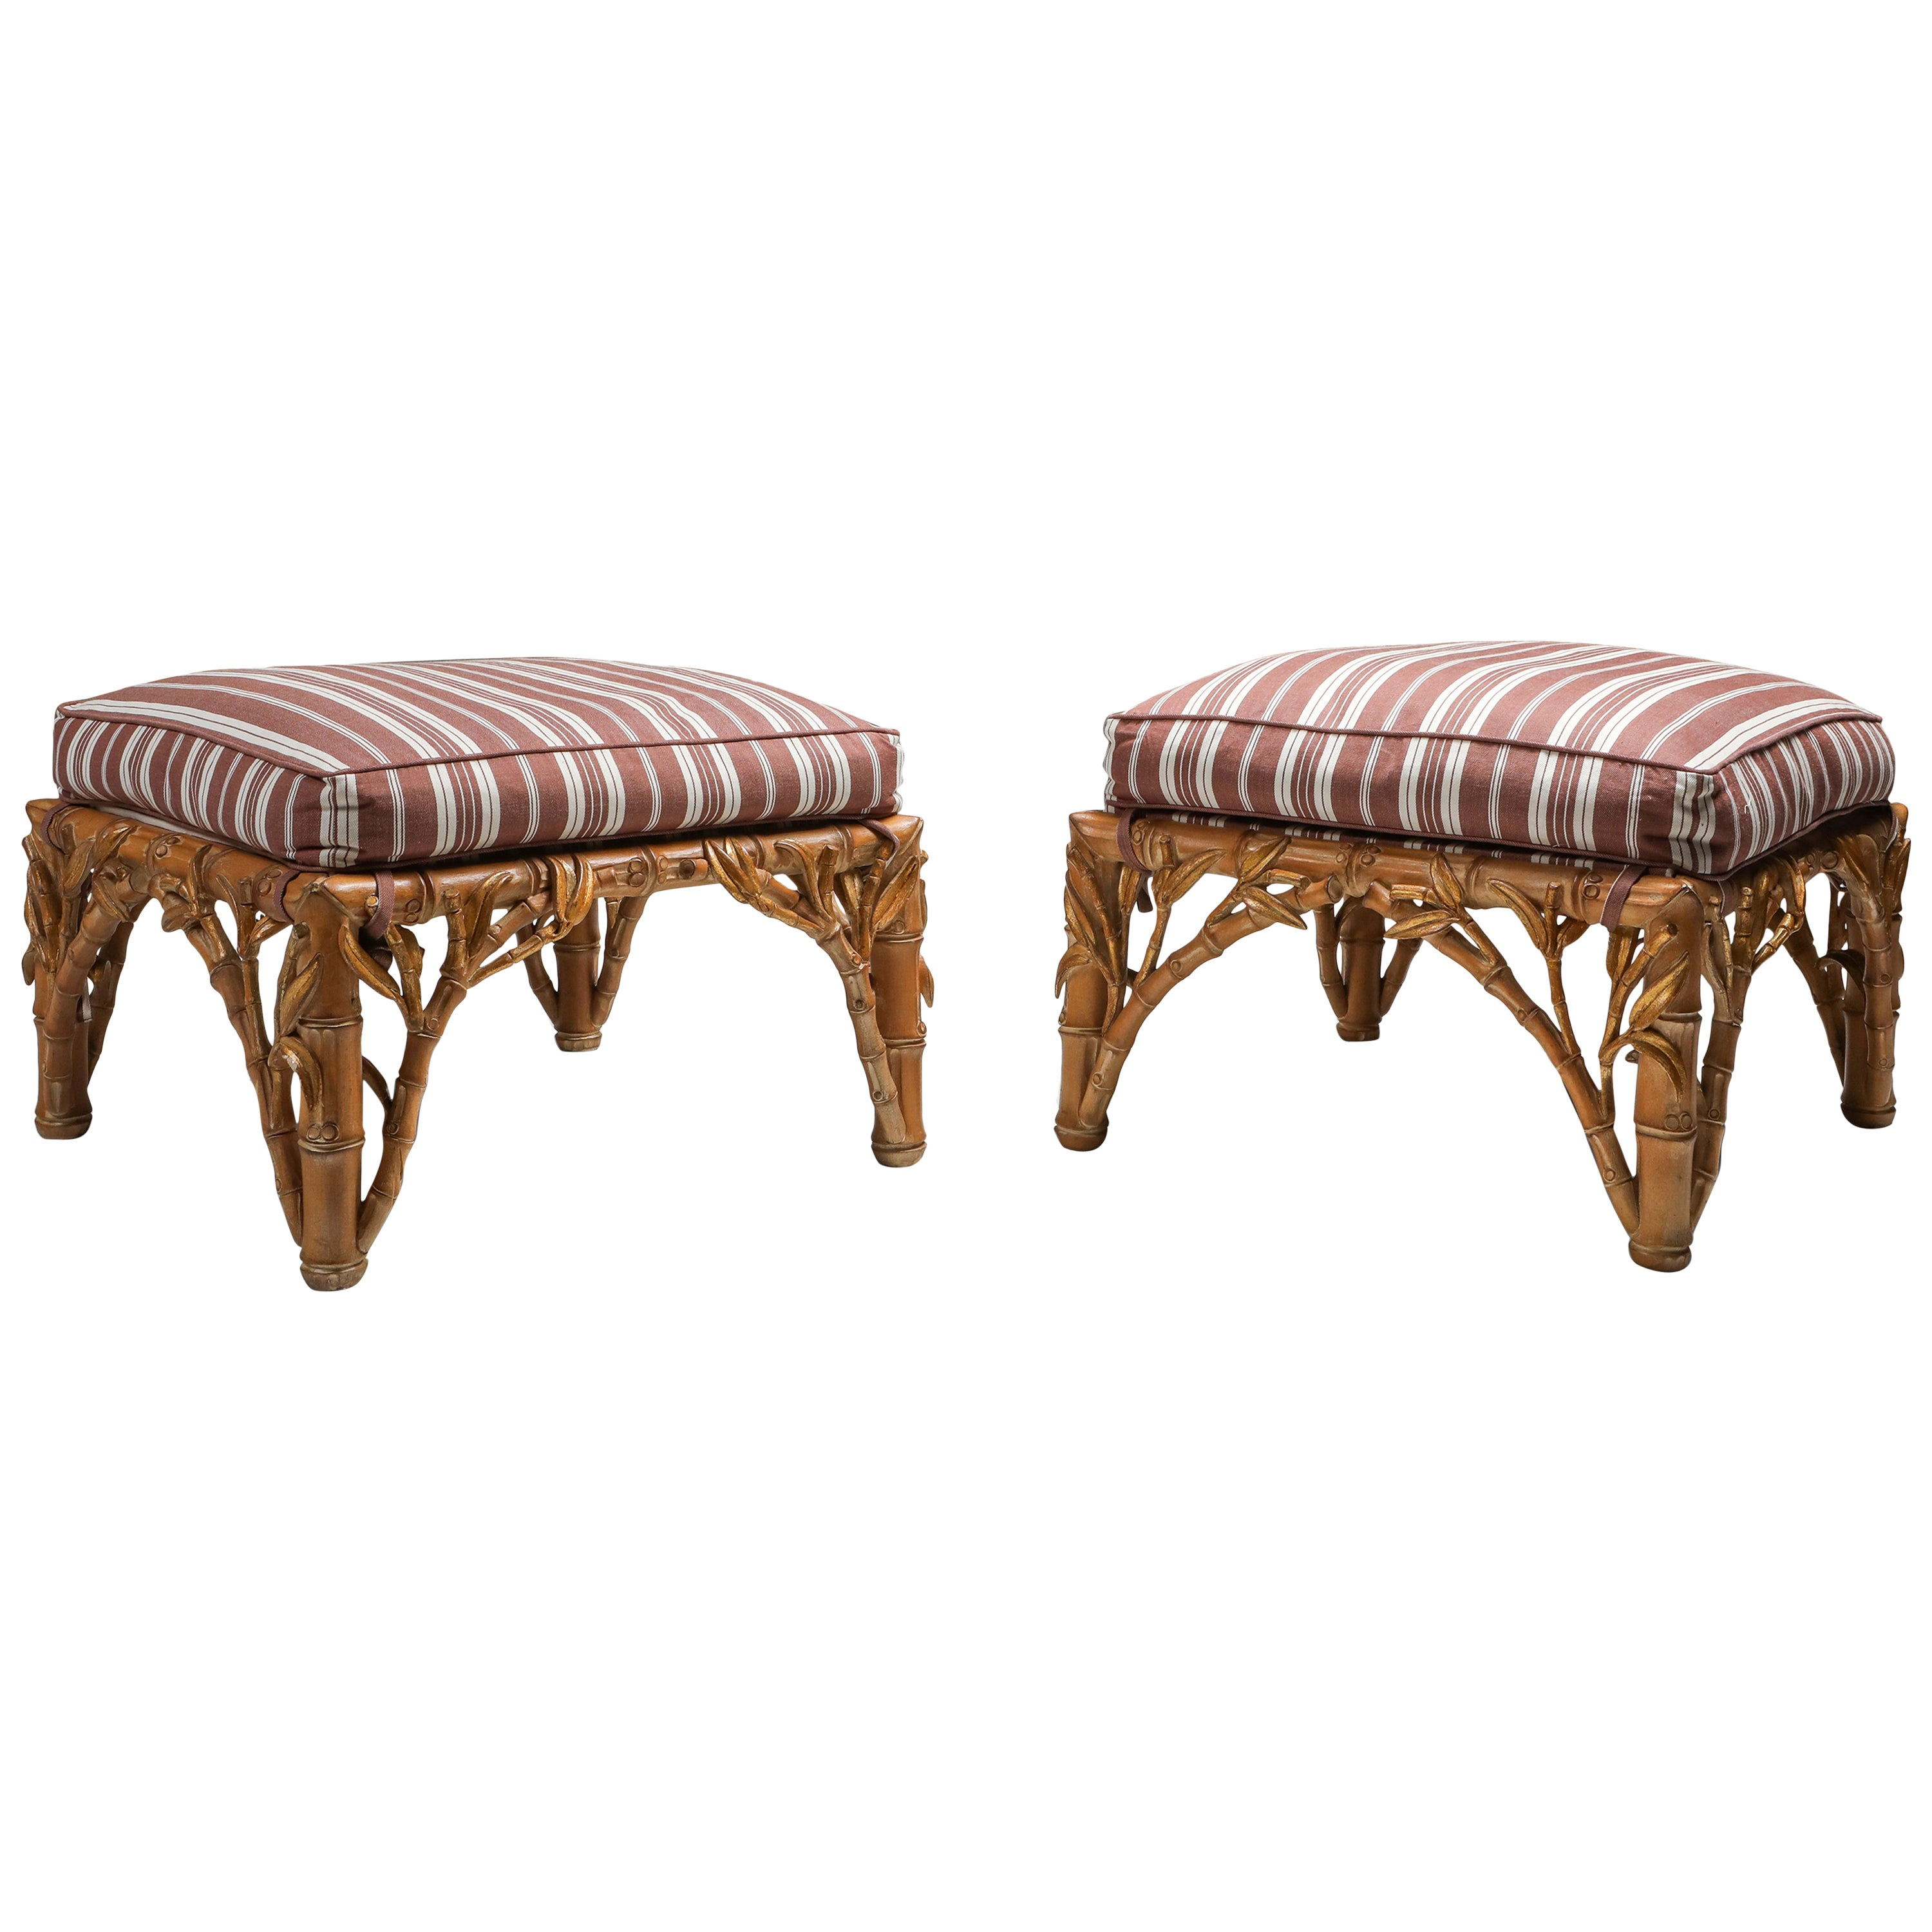 Bamboo Pair of Ottoman, Arpex, Italy, 1970s